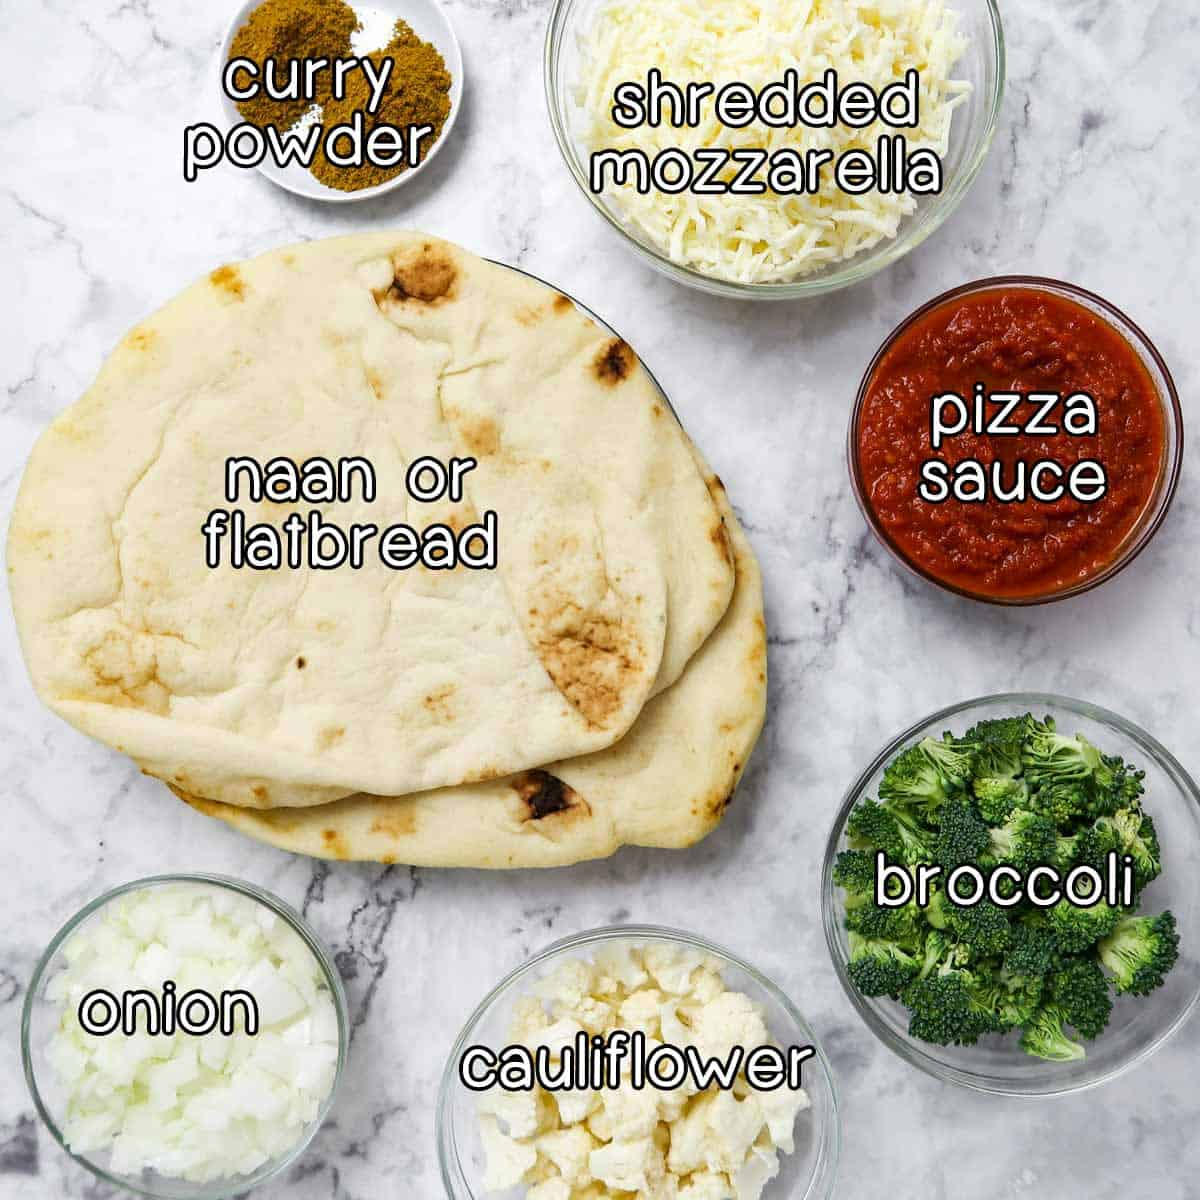 Overhead shot of ingredients- naan or flatbread, curry powder, shredded mozzarella, pizza sauce, broccoli, cauliflower, and onion.